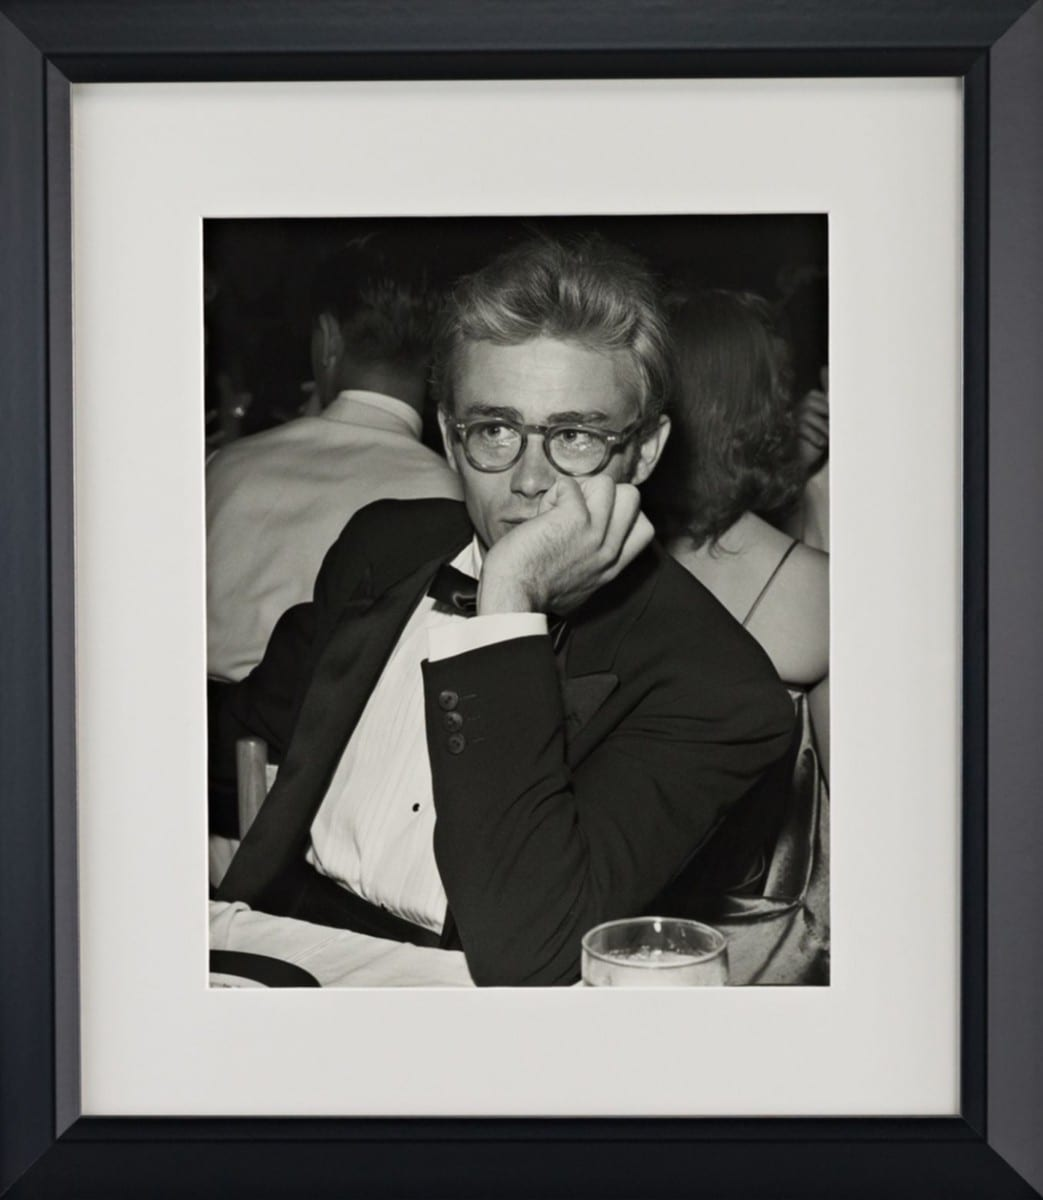 Michael Ochs, James Dean, gelatin silver print on archival fiber paper, 1955 ©Ralph Lauren Home and Getty Images